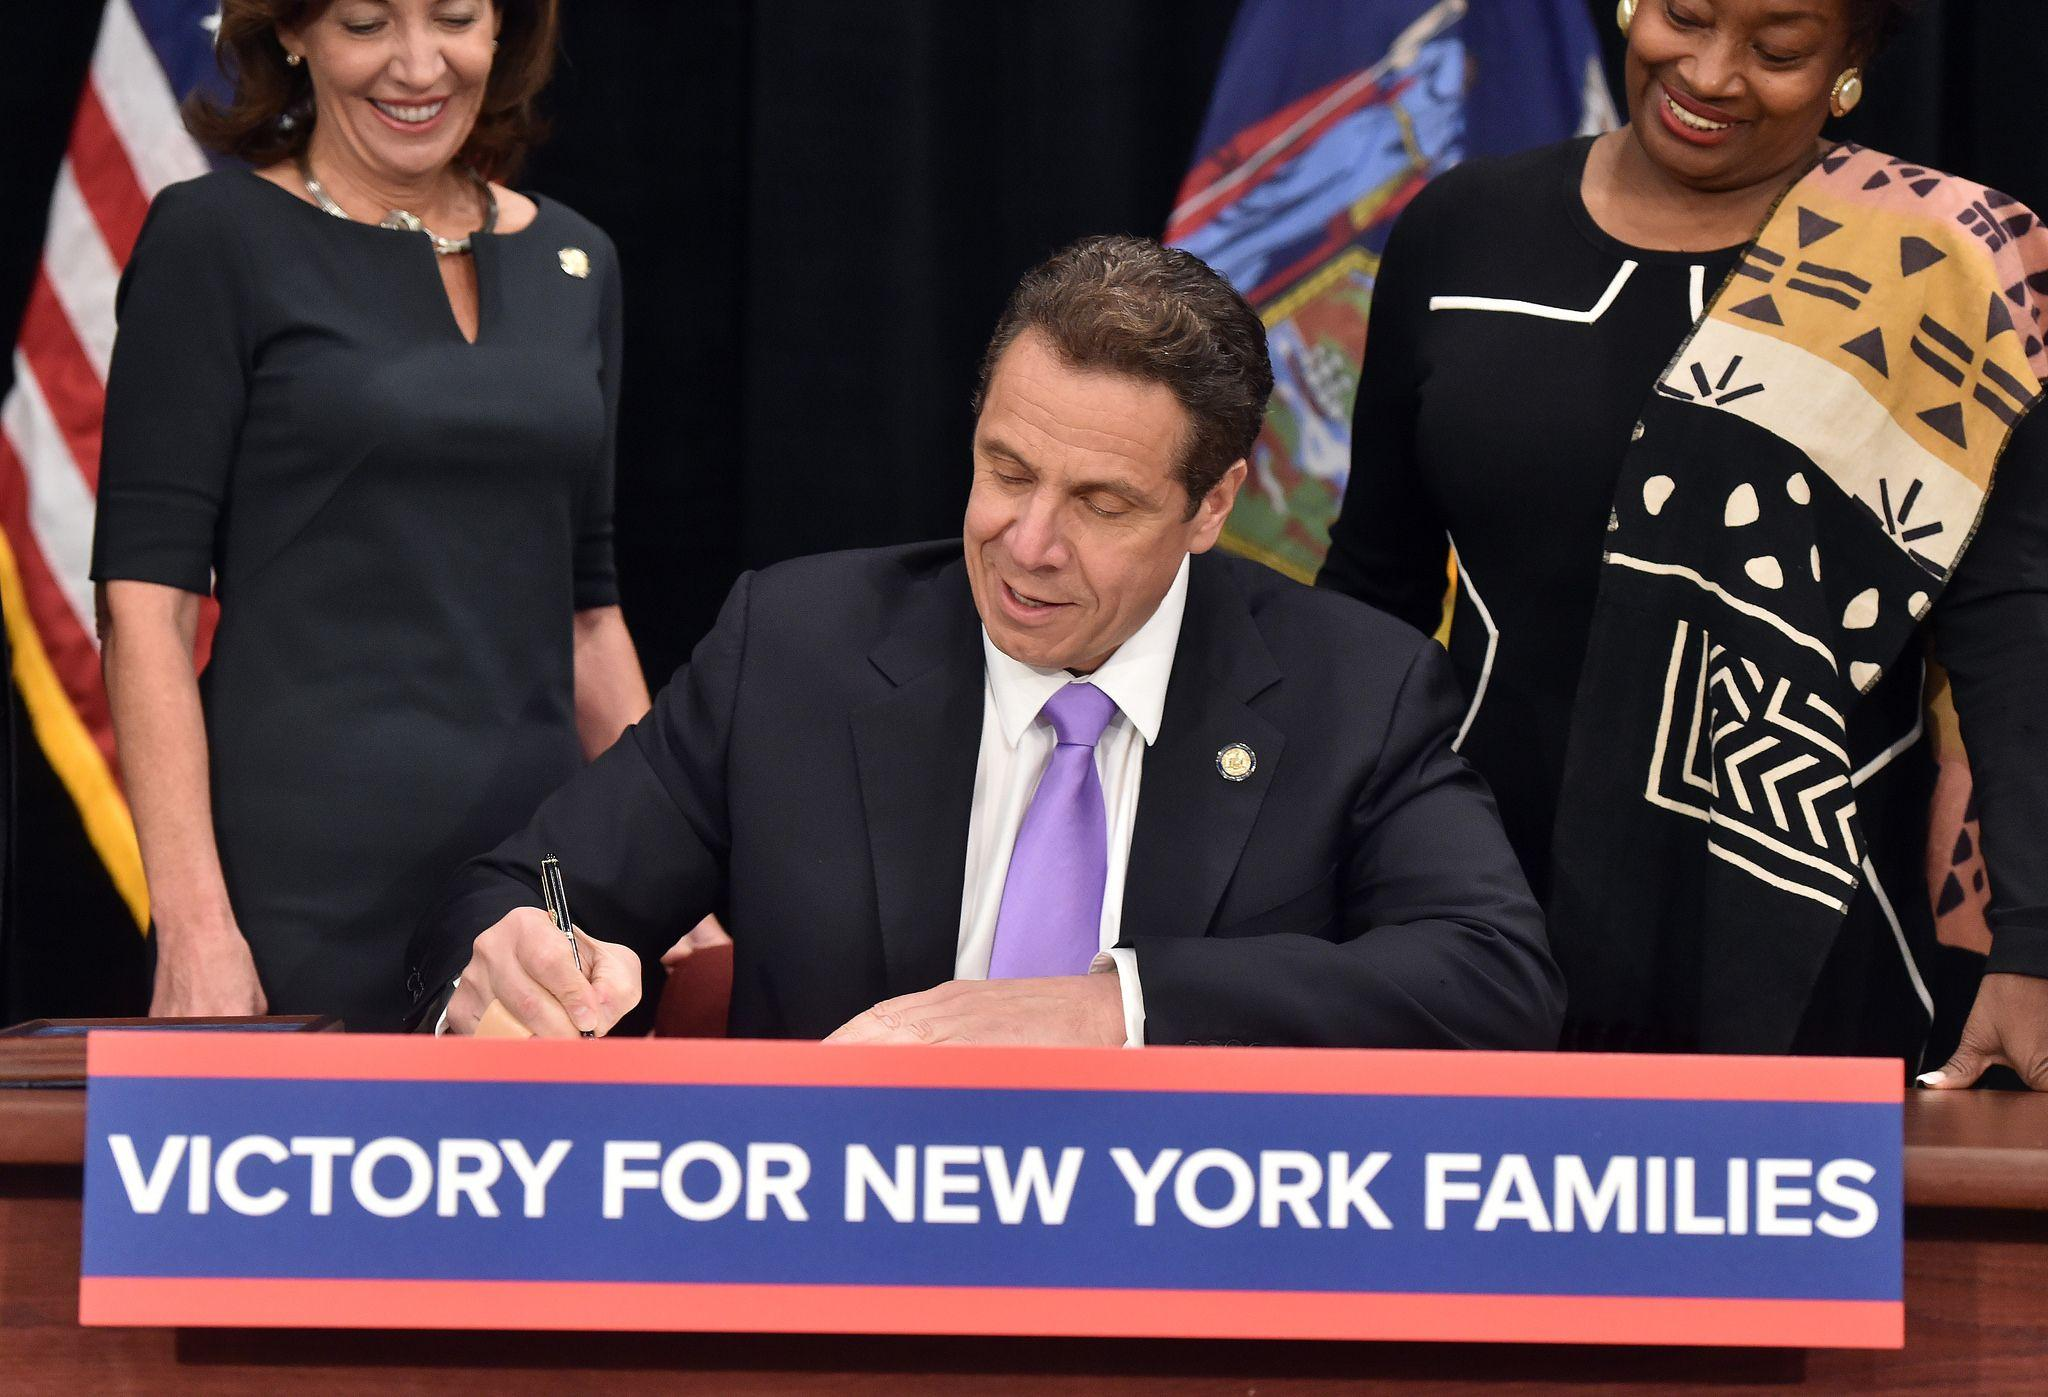 Cuomo Gives State Of State Address, Local Lawmaker Raises Questions